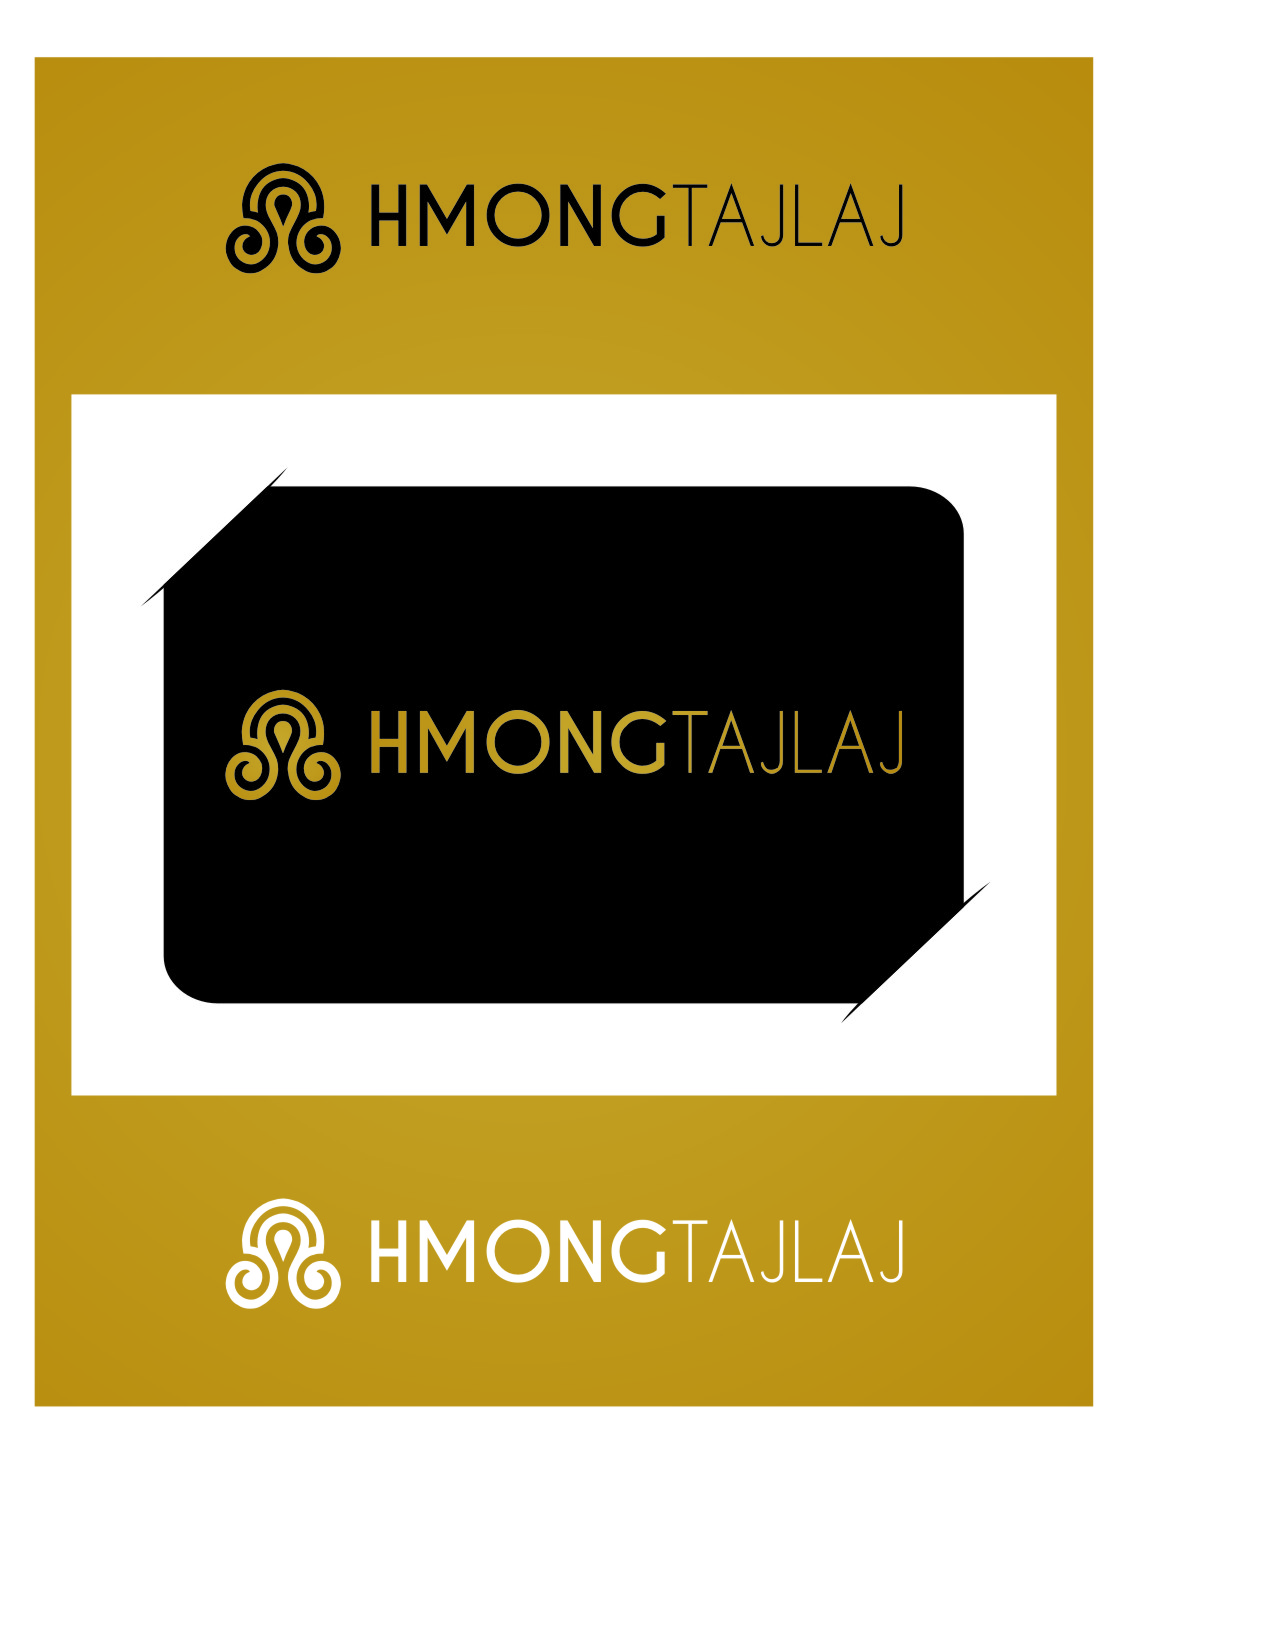 Logo Design by Ngepet_art - Entry No. 11 in the Logo Design Contest Unique Logo Design Wanted for Hmong Tajlaj.